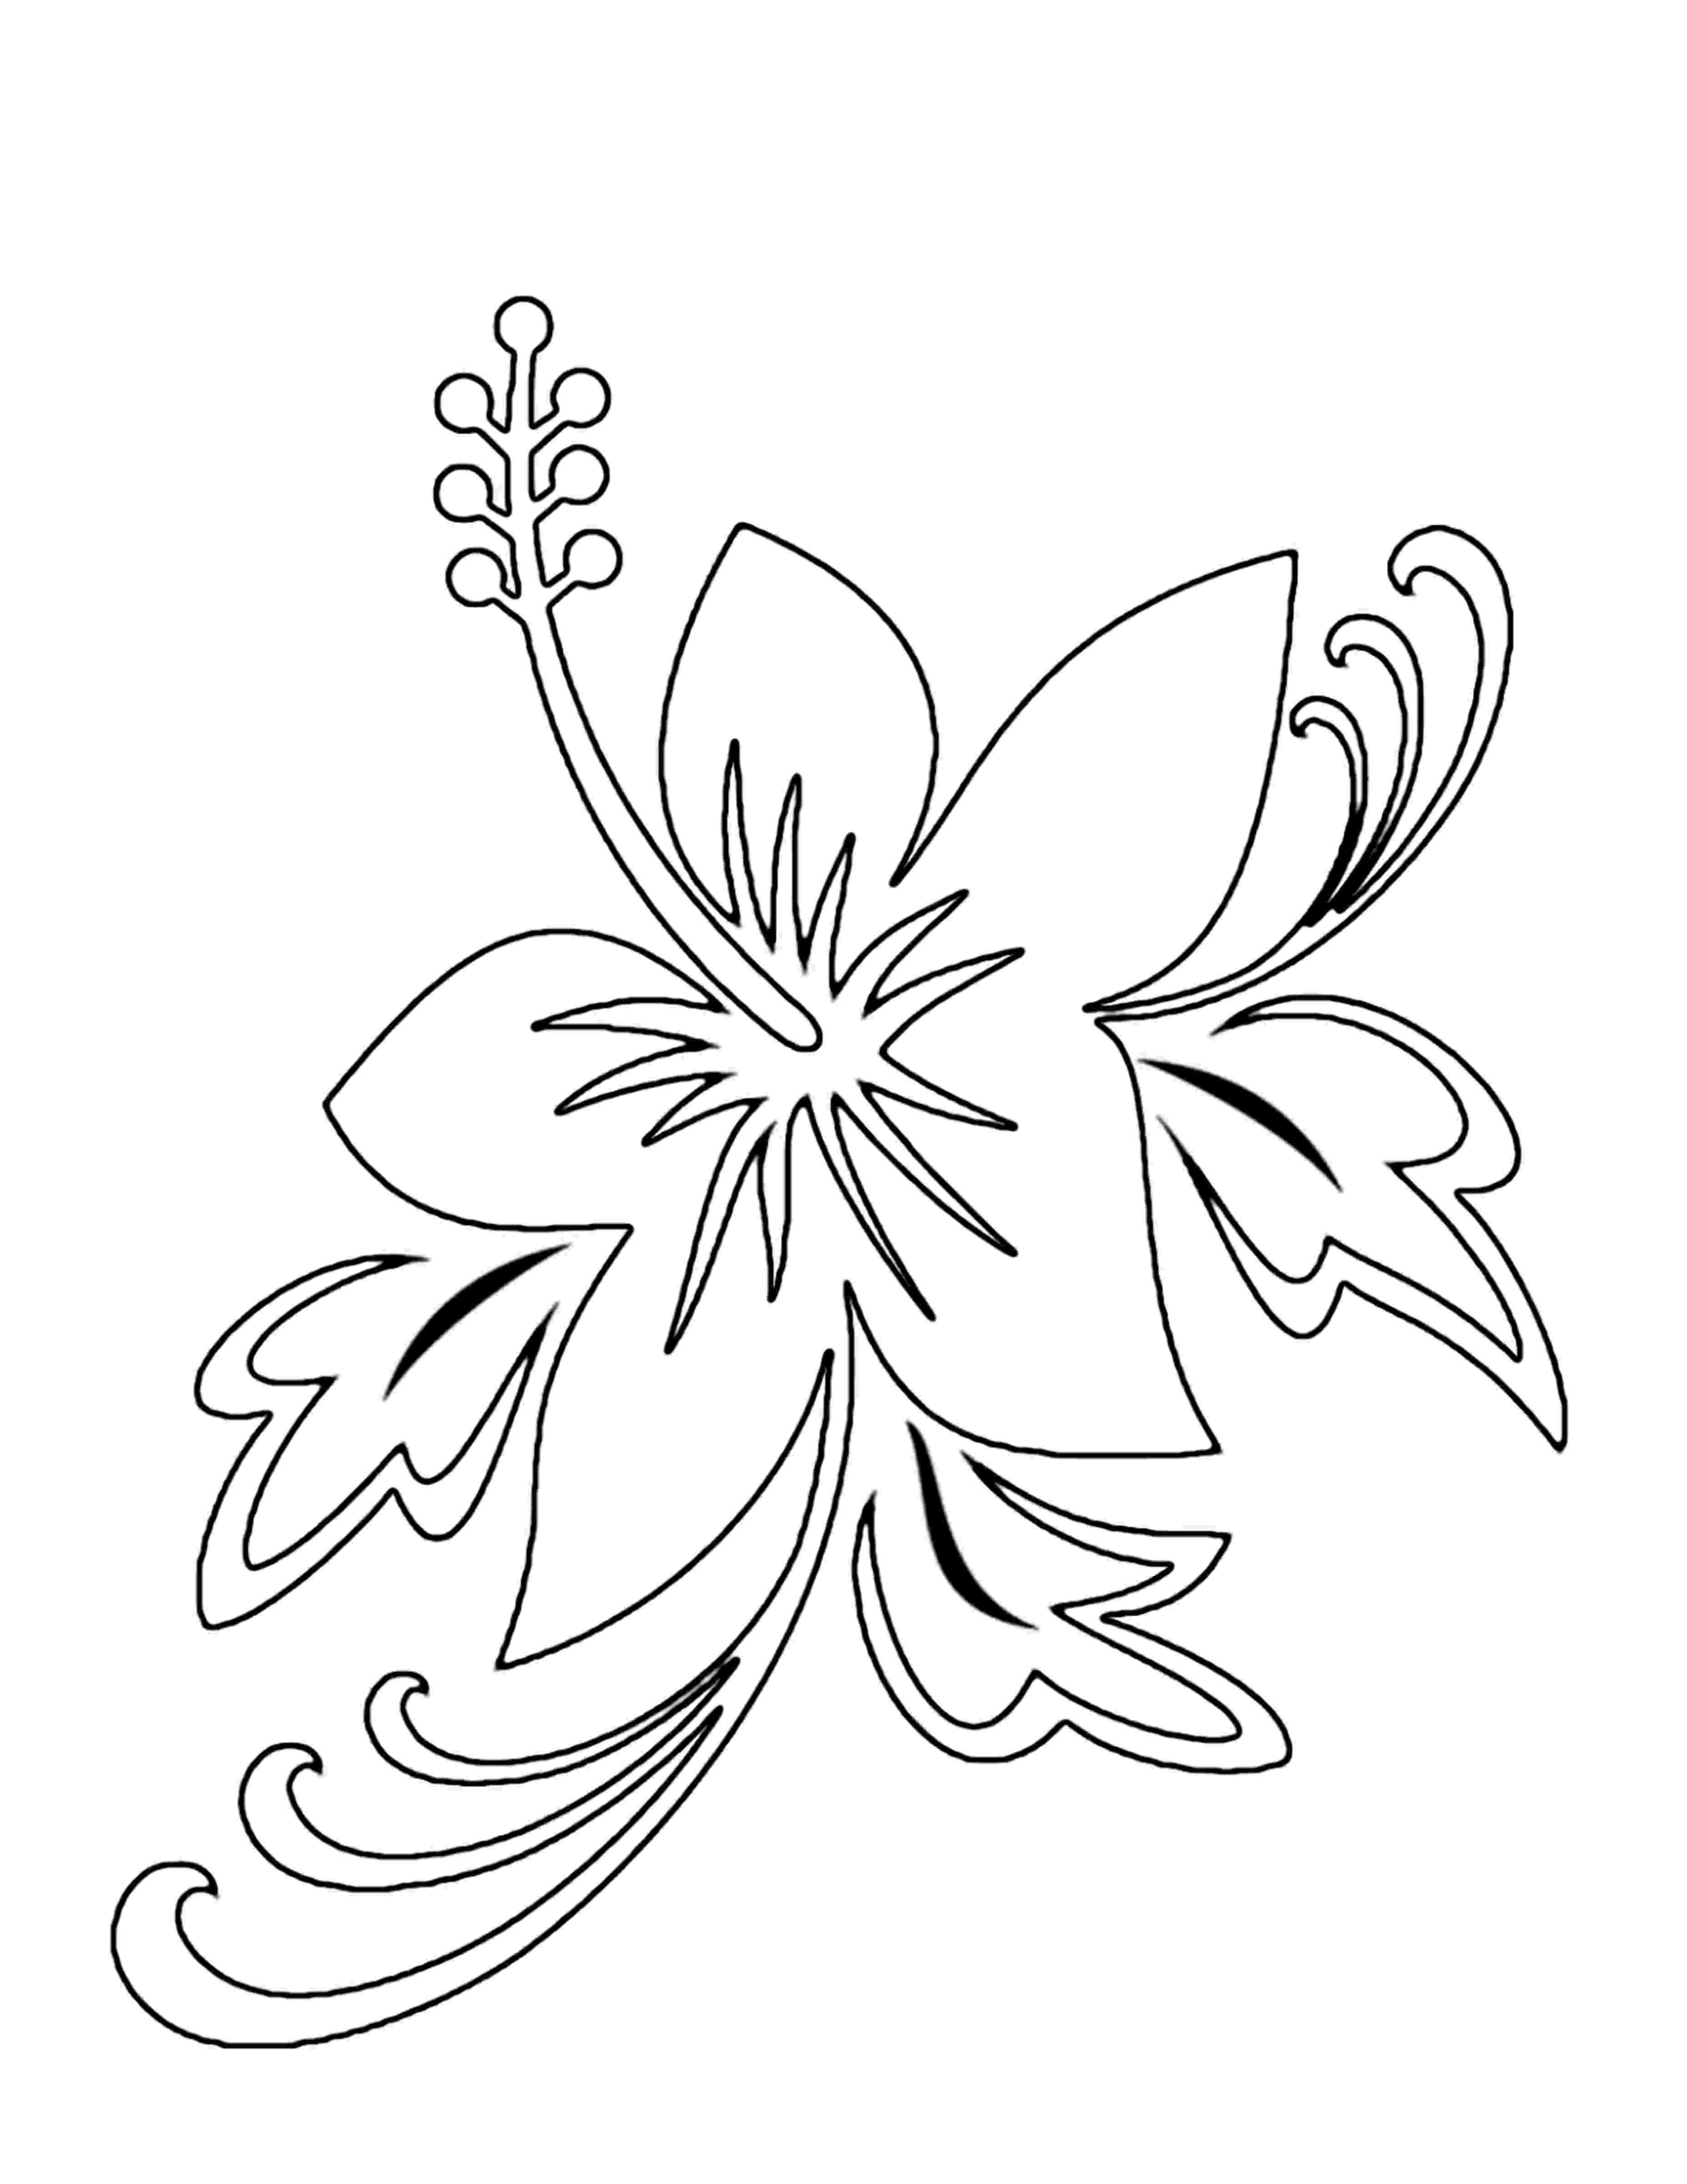 flower for coloring free printable flower coloring pages for kids best for flower coloring